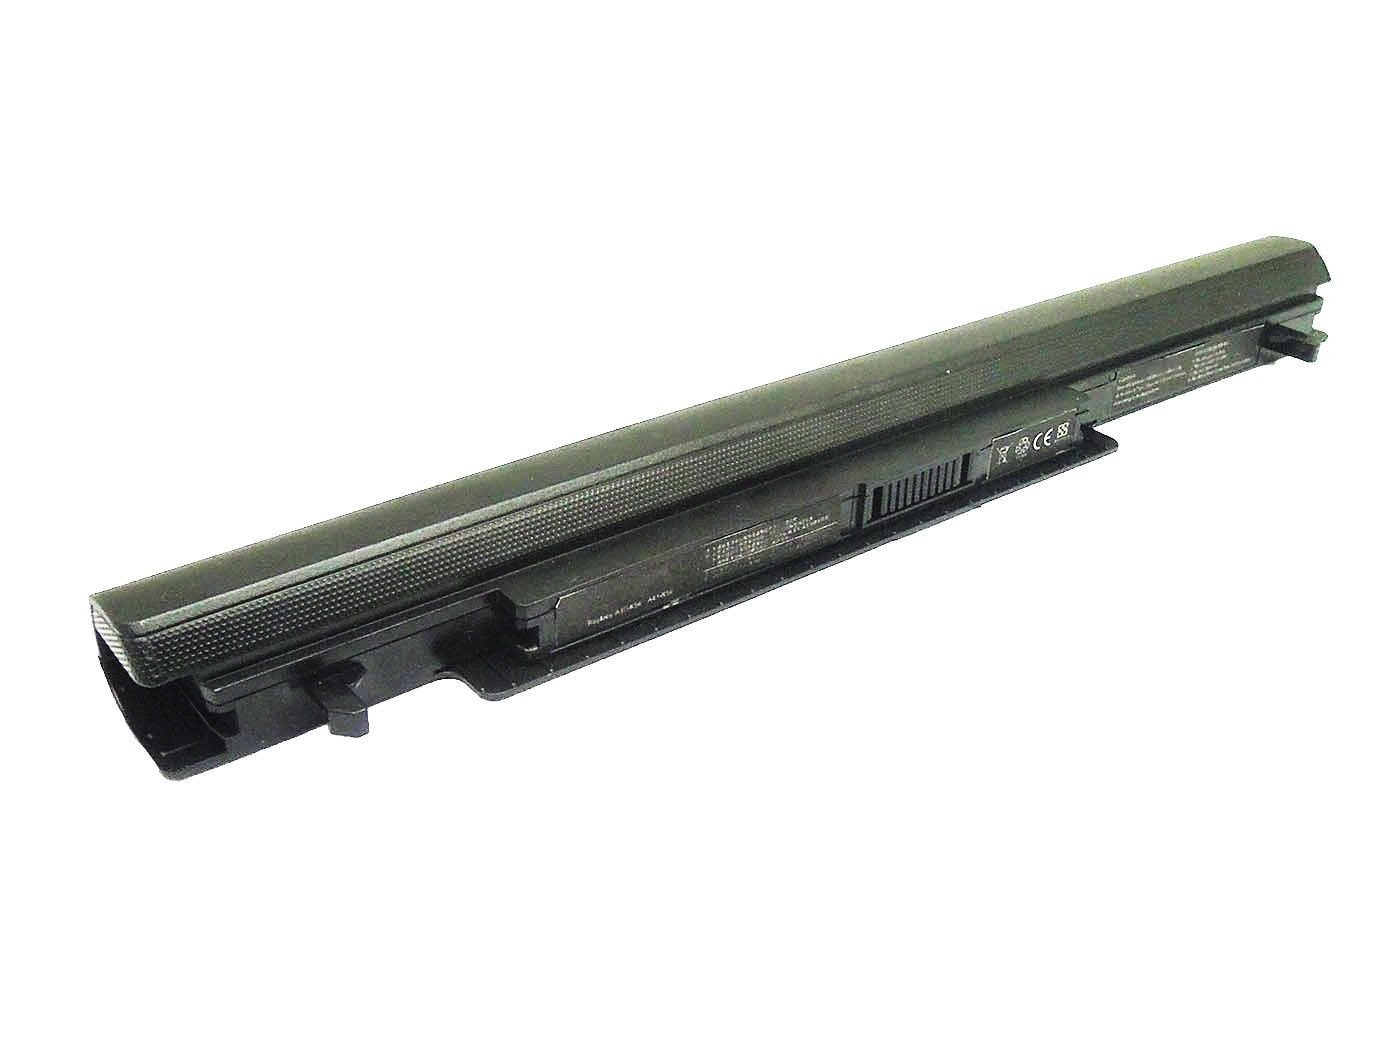 Asus A46 E46 K46 K56 R405 R505 R550 series compatible laptop battery